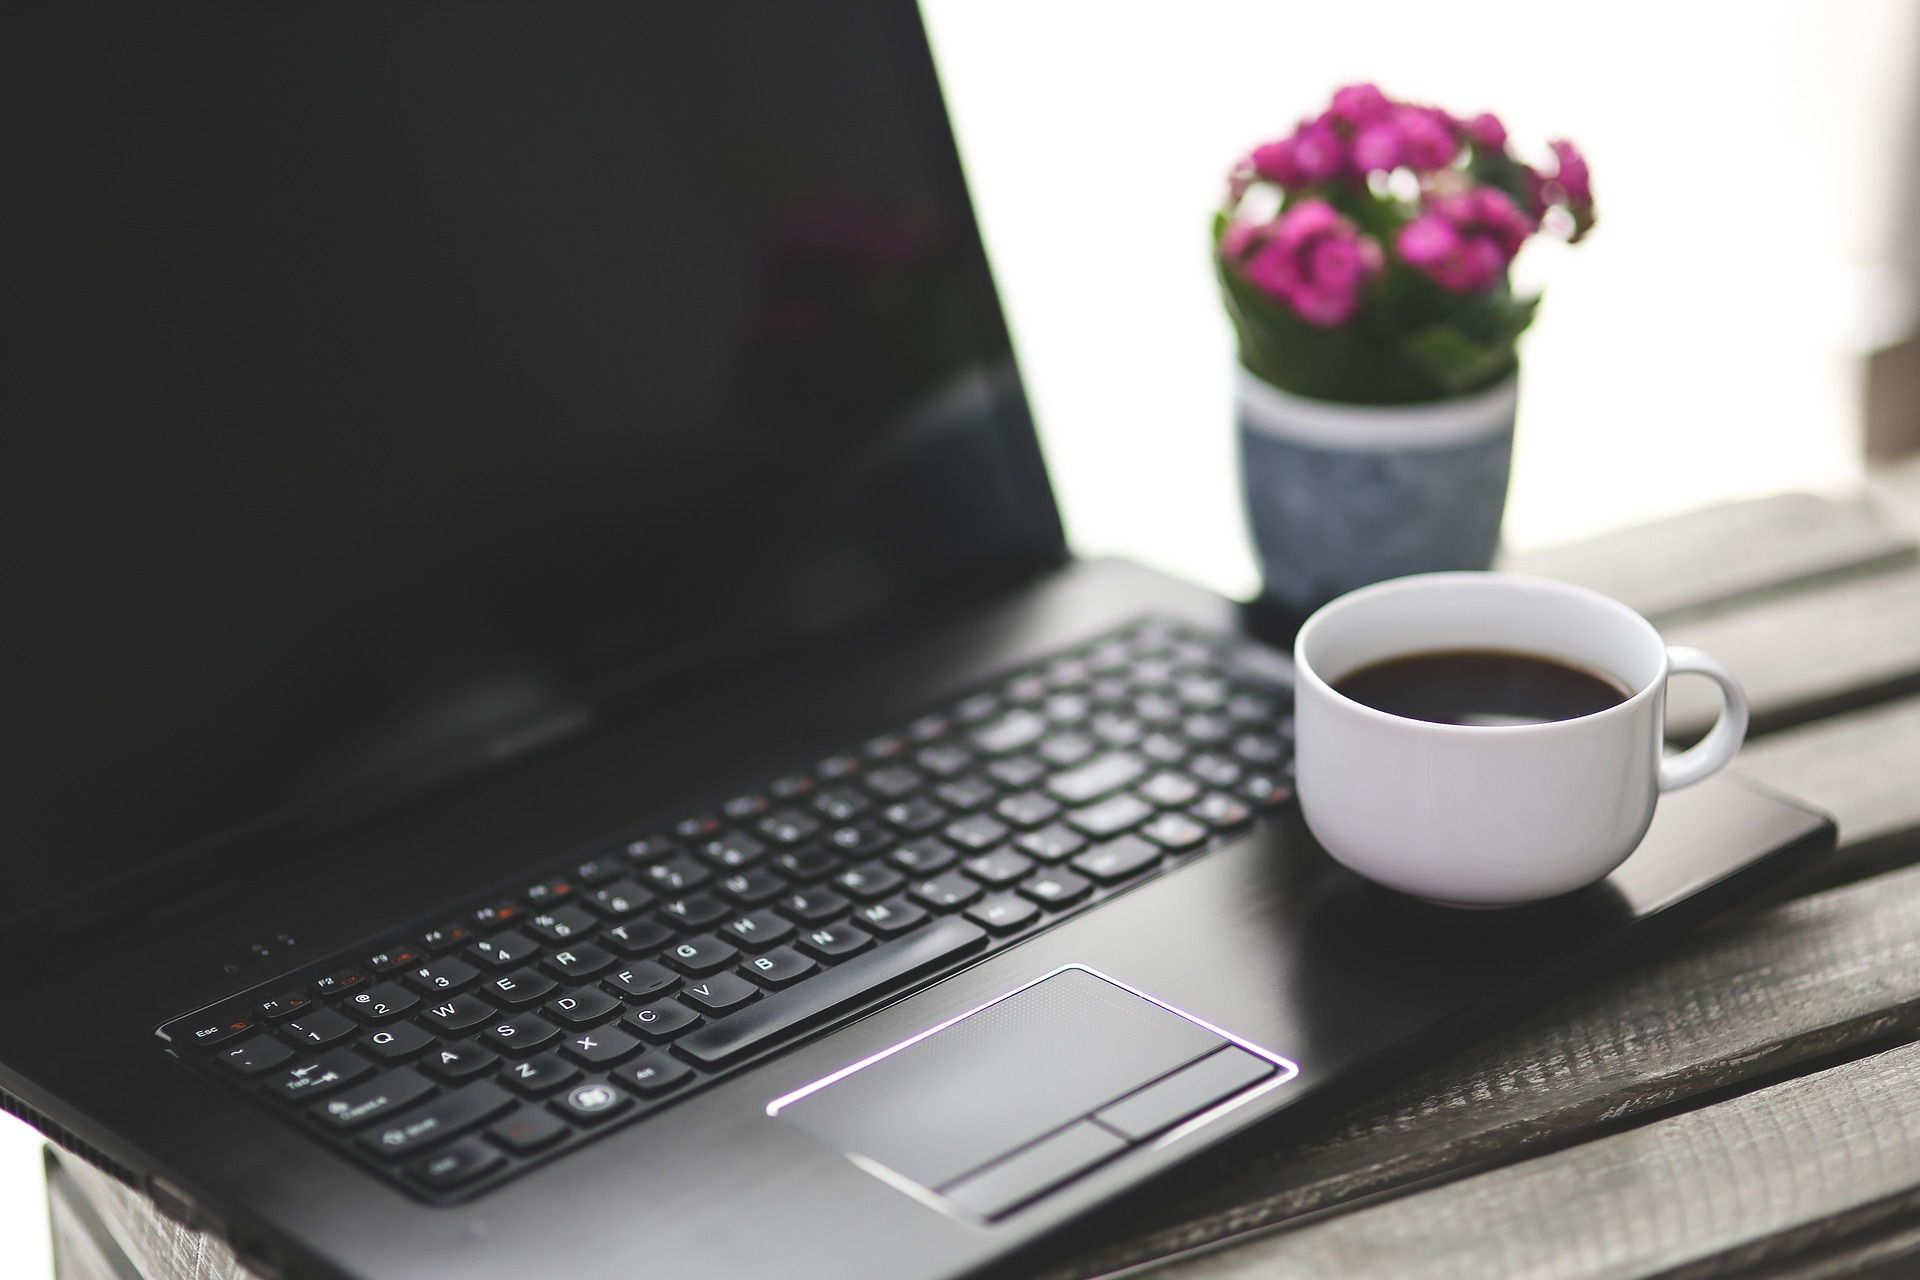 Tea cup sitting on laptop